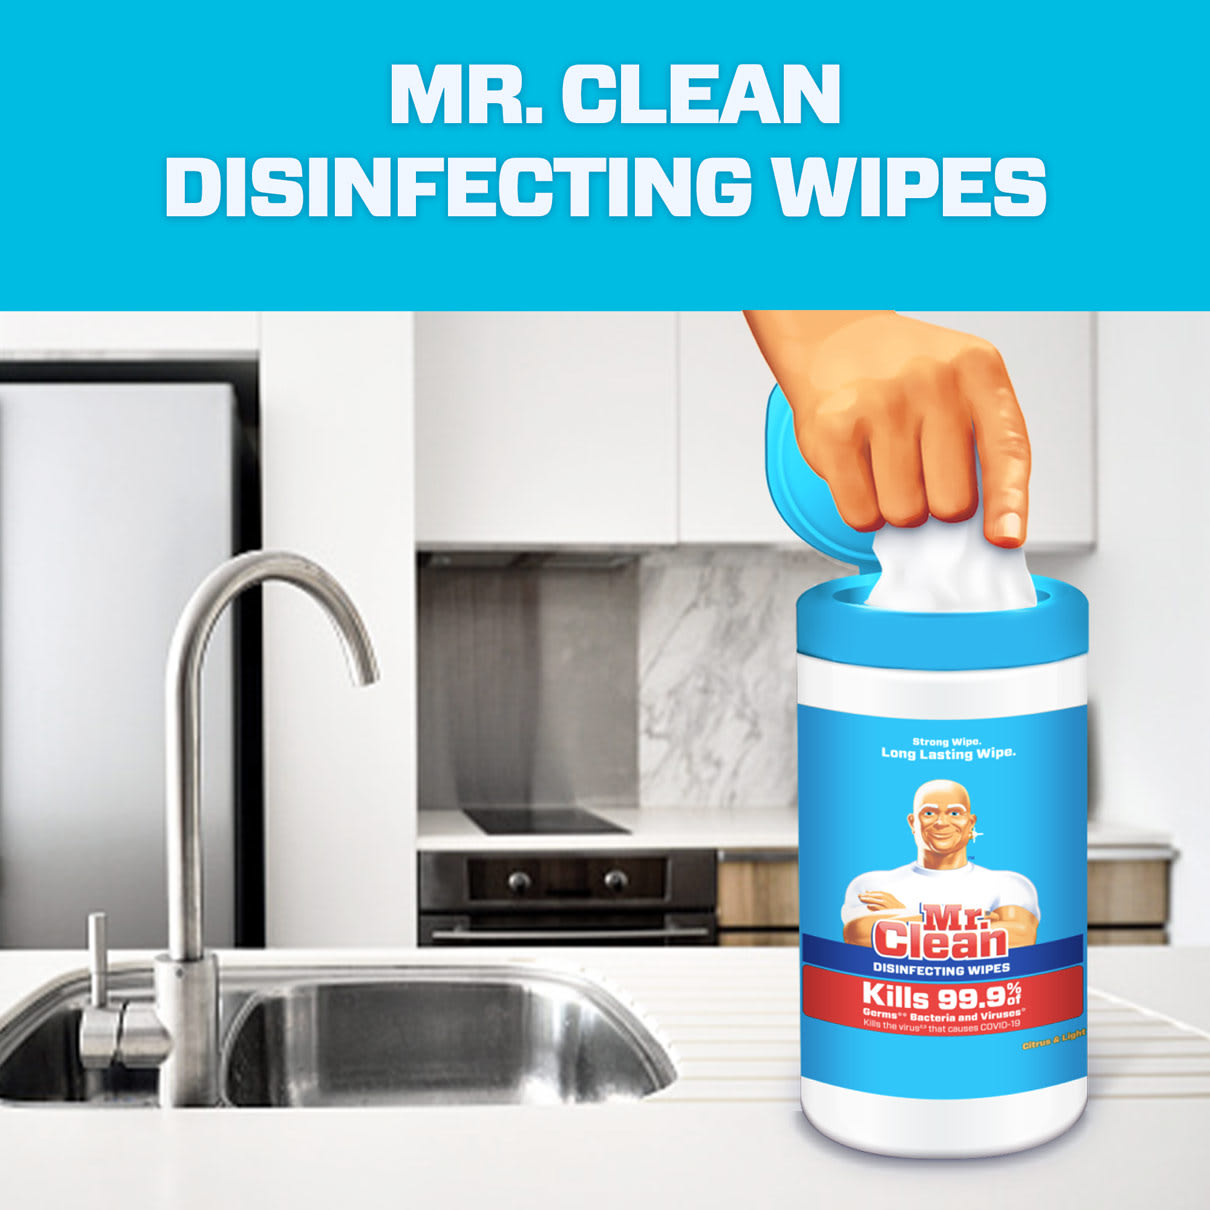 Mr. Clean - Disinfecting wipes